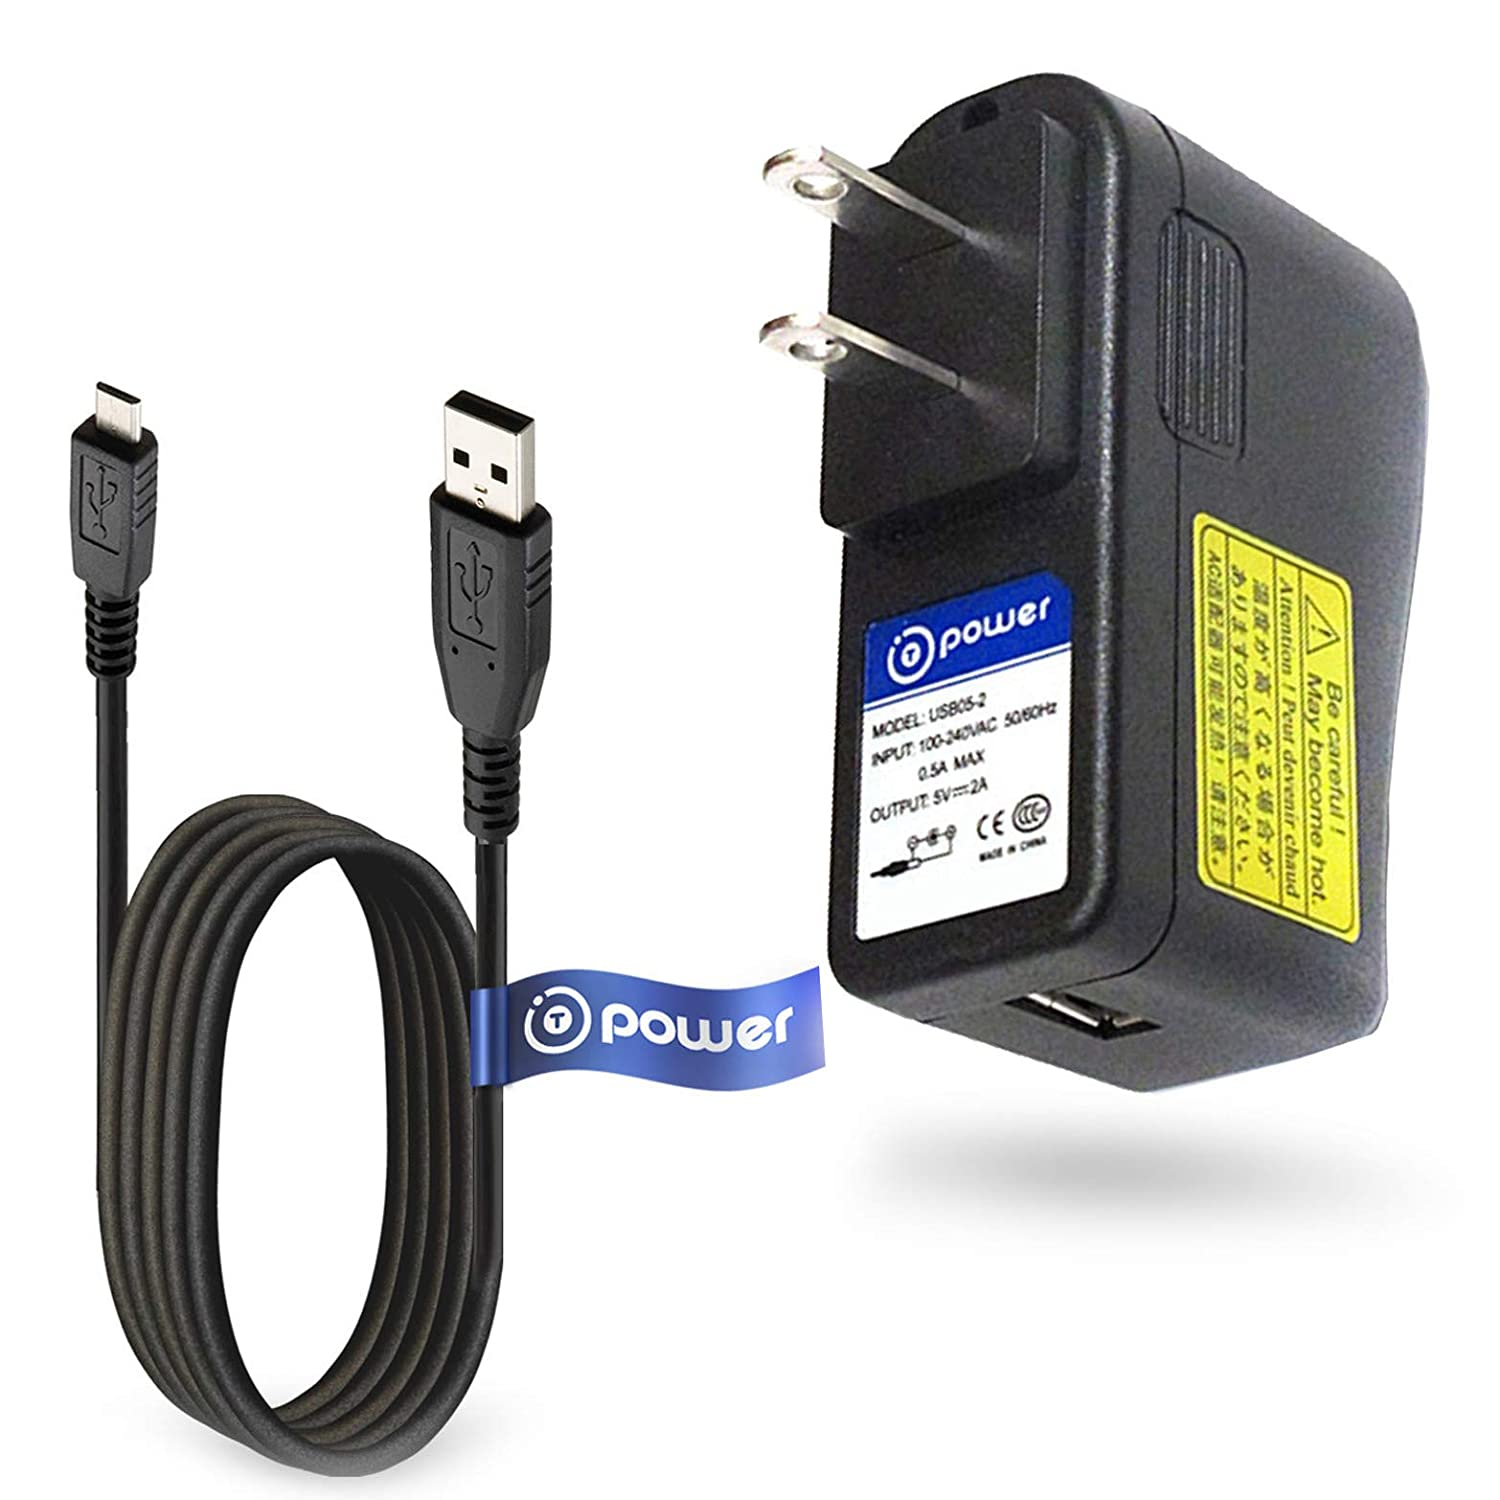 T POWER 5V Charger Dc Adapter Compatible with Voyor , Hoposo, Uniden Bearcat BC75XLT BC-75XLT , BC125AT, BCD325P2, BCD436HP, and HOME PATROL 2 RADIO SCANNERS Power Supply